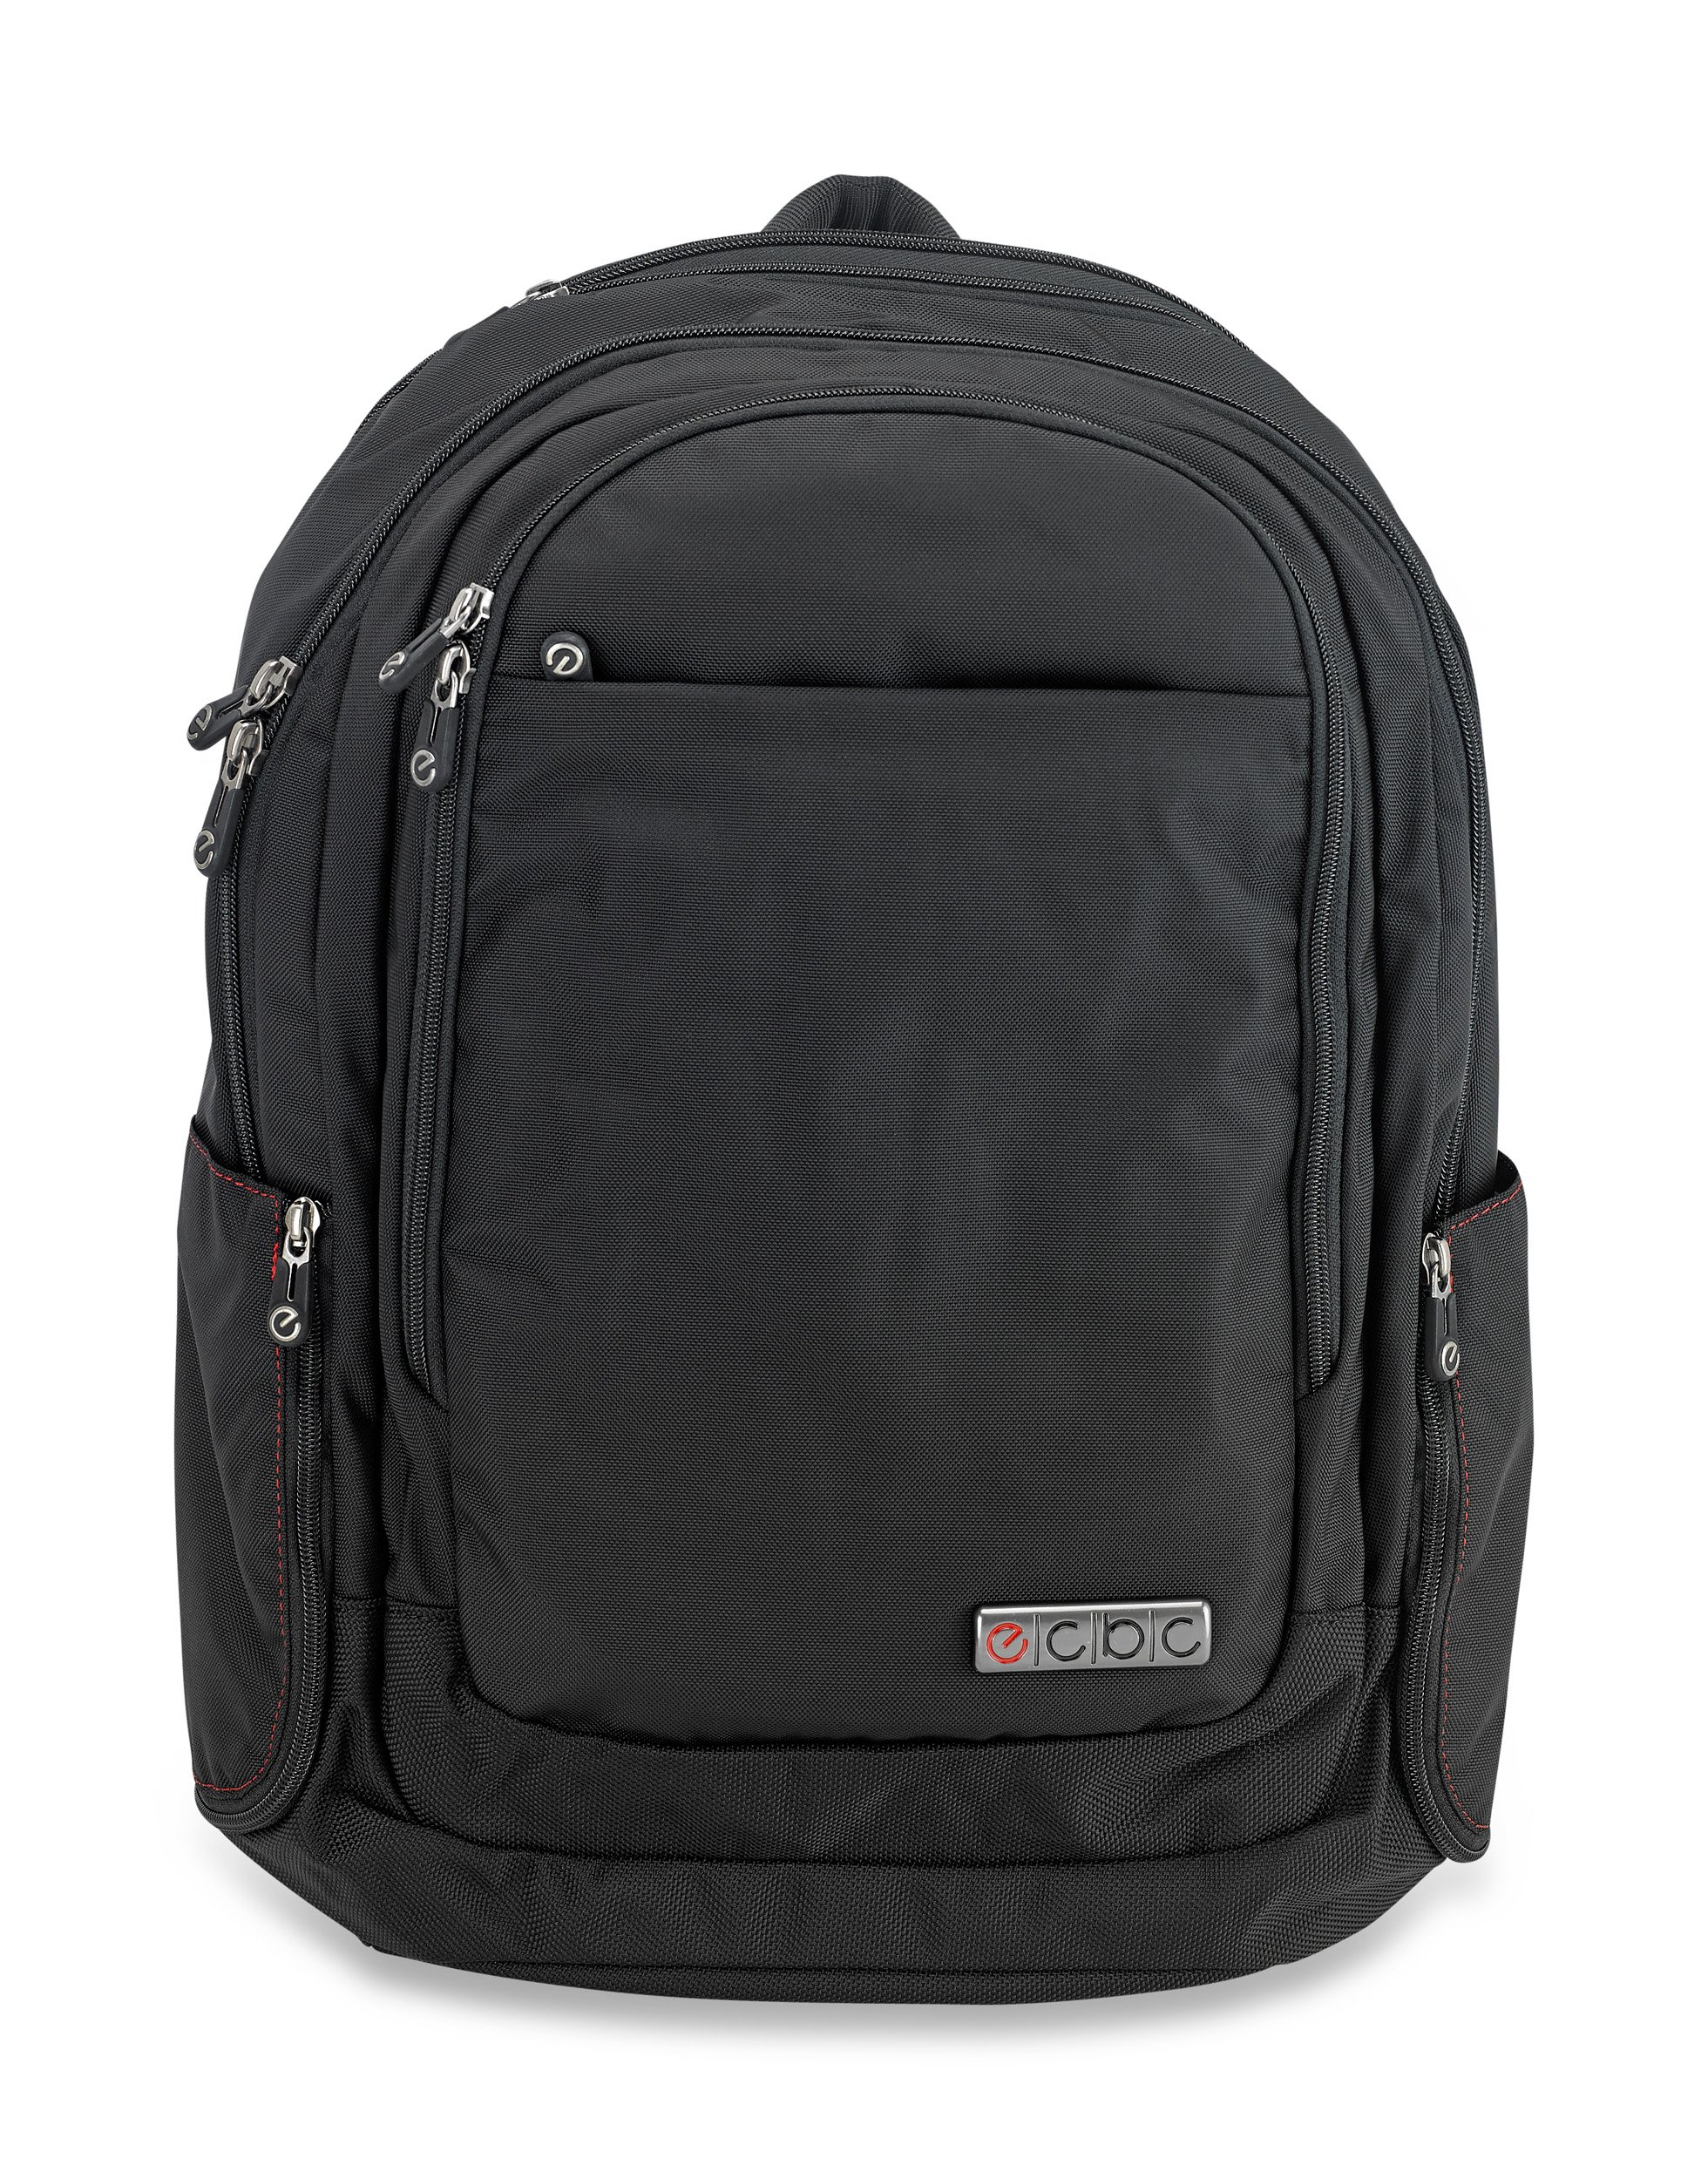 ECBC Javelin - Backpack Computer Bag - Black (B7102-10) Daypack for Laptops, MacBooks & Devices Up to 16.5'' - Travel, School or Business Backpack for Men & Women - Premium Quality, TSA FastPass Friendly